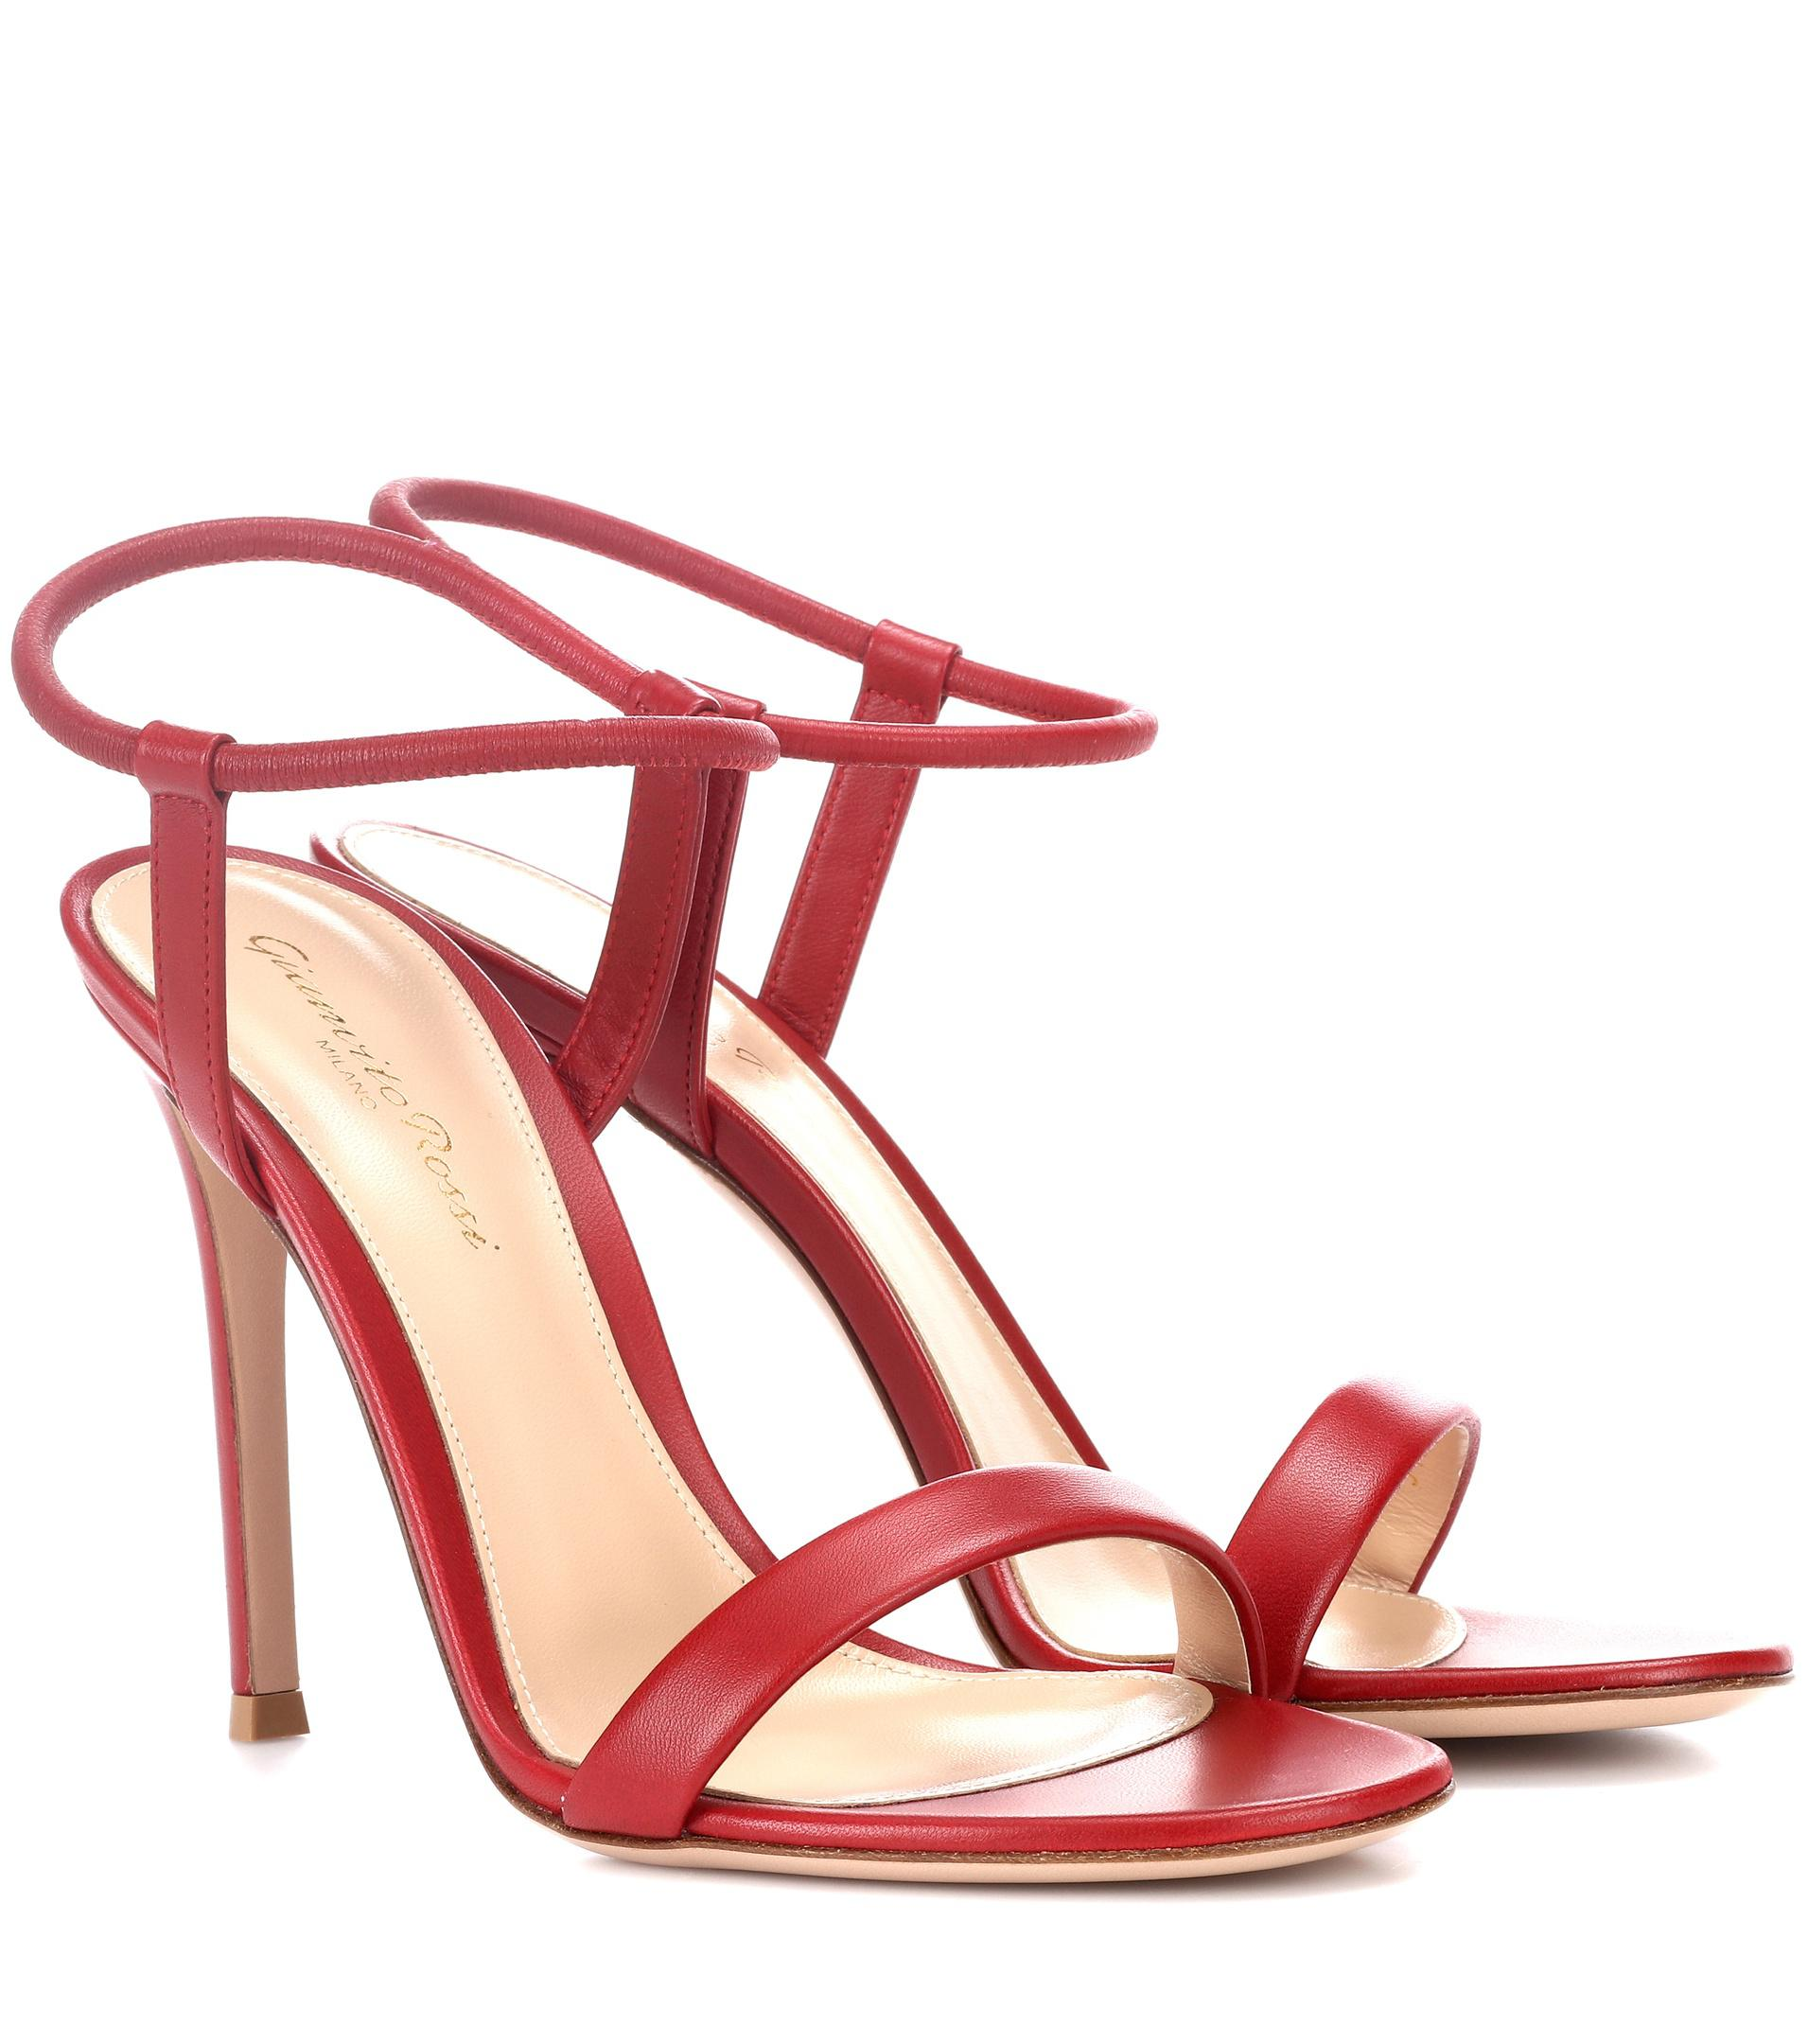 outlet excellent fashionable cheap online Gianvito Rossi Hailee suede sandals buy cheap Cheapest lowest price Kx2DRNIGp